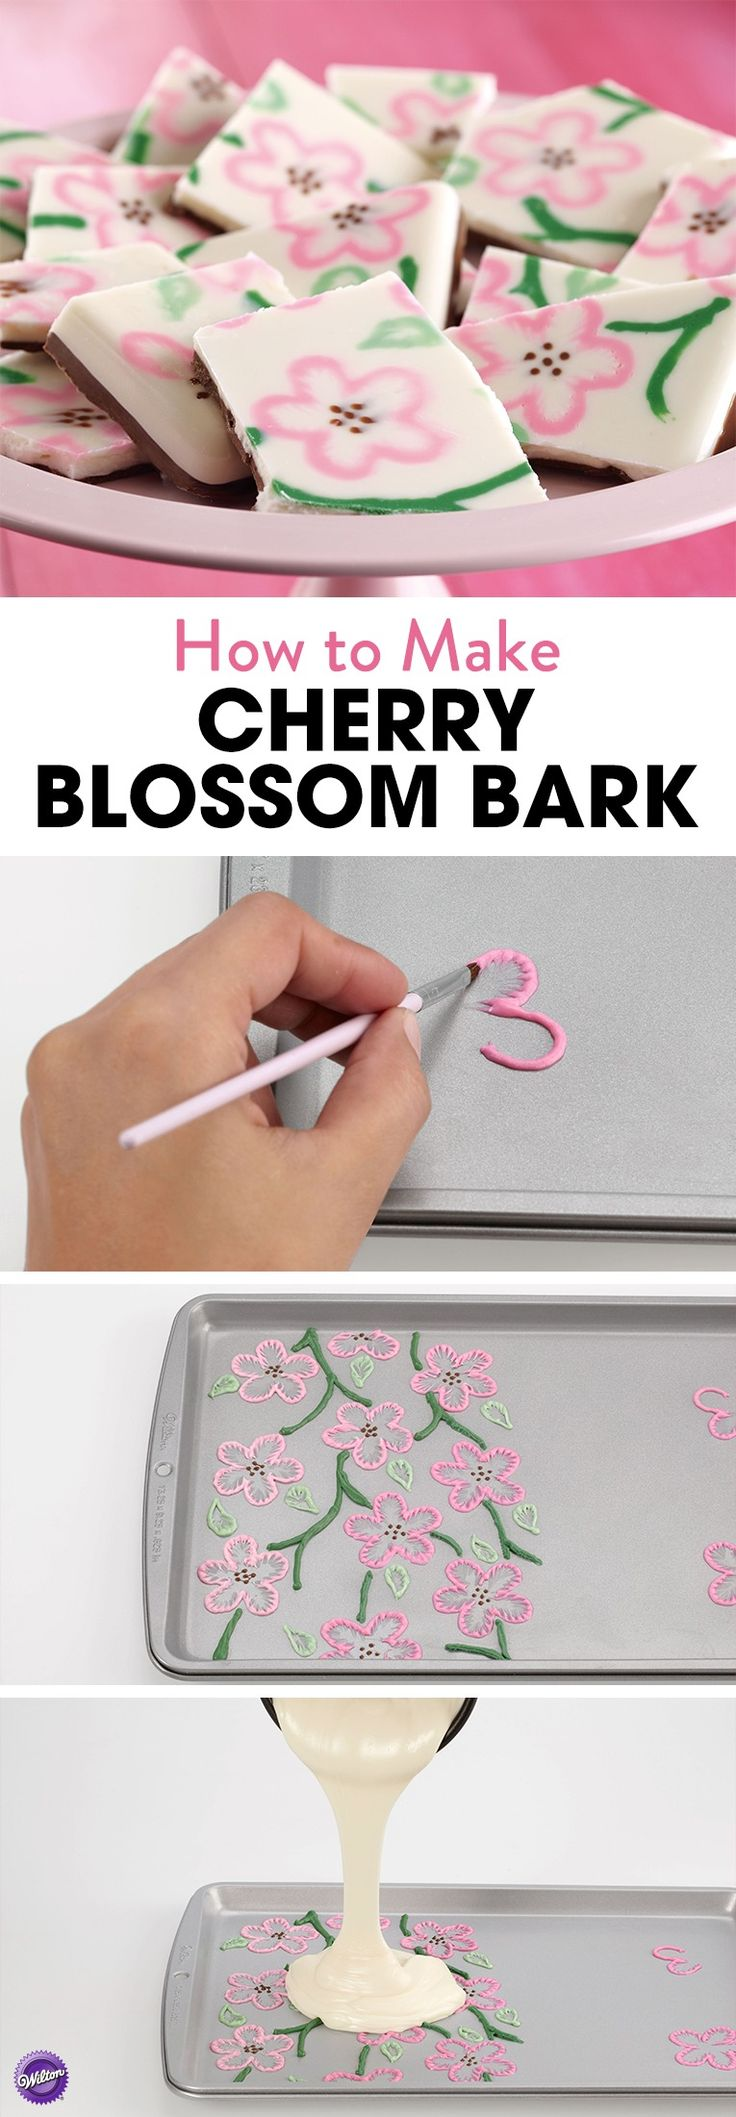 How to Make Cherry Blossom Bark - Melt pink Candy Melts and put in a decorating bag to pipe flowers on a baking sheet.  Use a brush to draw thin lines of the candy toward the center of the petal. Melt green Candy Melts and use it to pipe stems. Pour melted white Candy Melts over flowers, leaves and vines. Chill until firm.